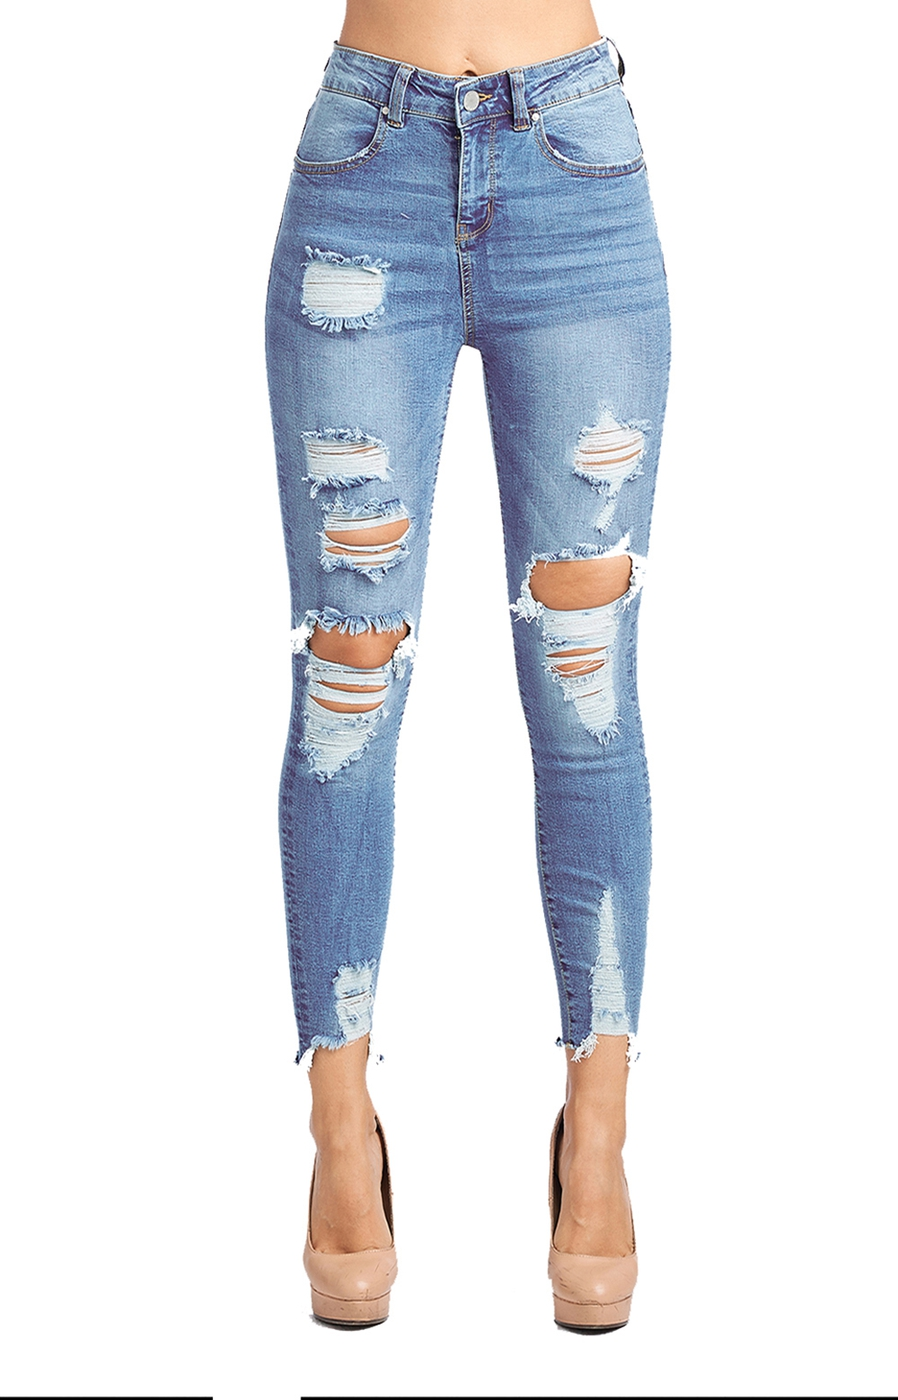 HIGH WAISTED DESTROYED SKINNY JEANS - orangeshine.com